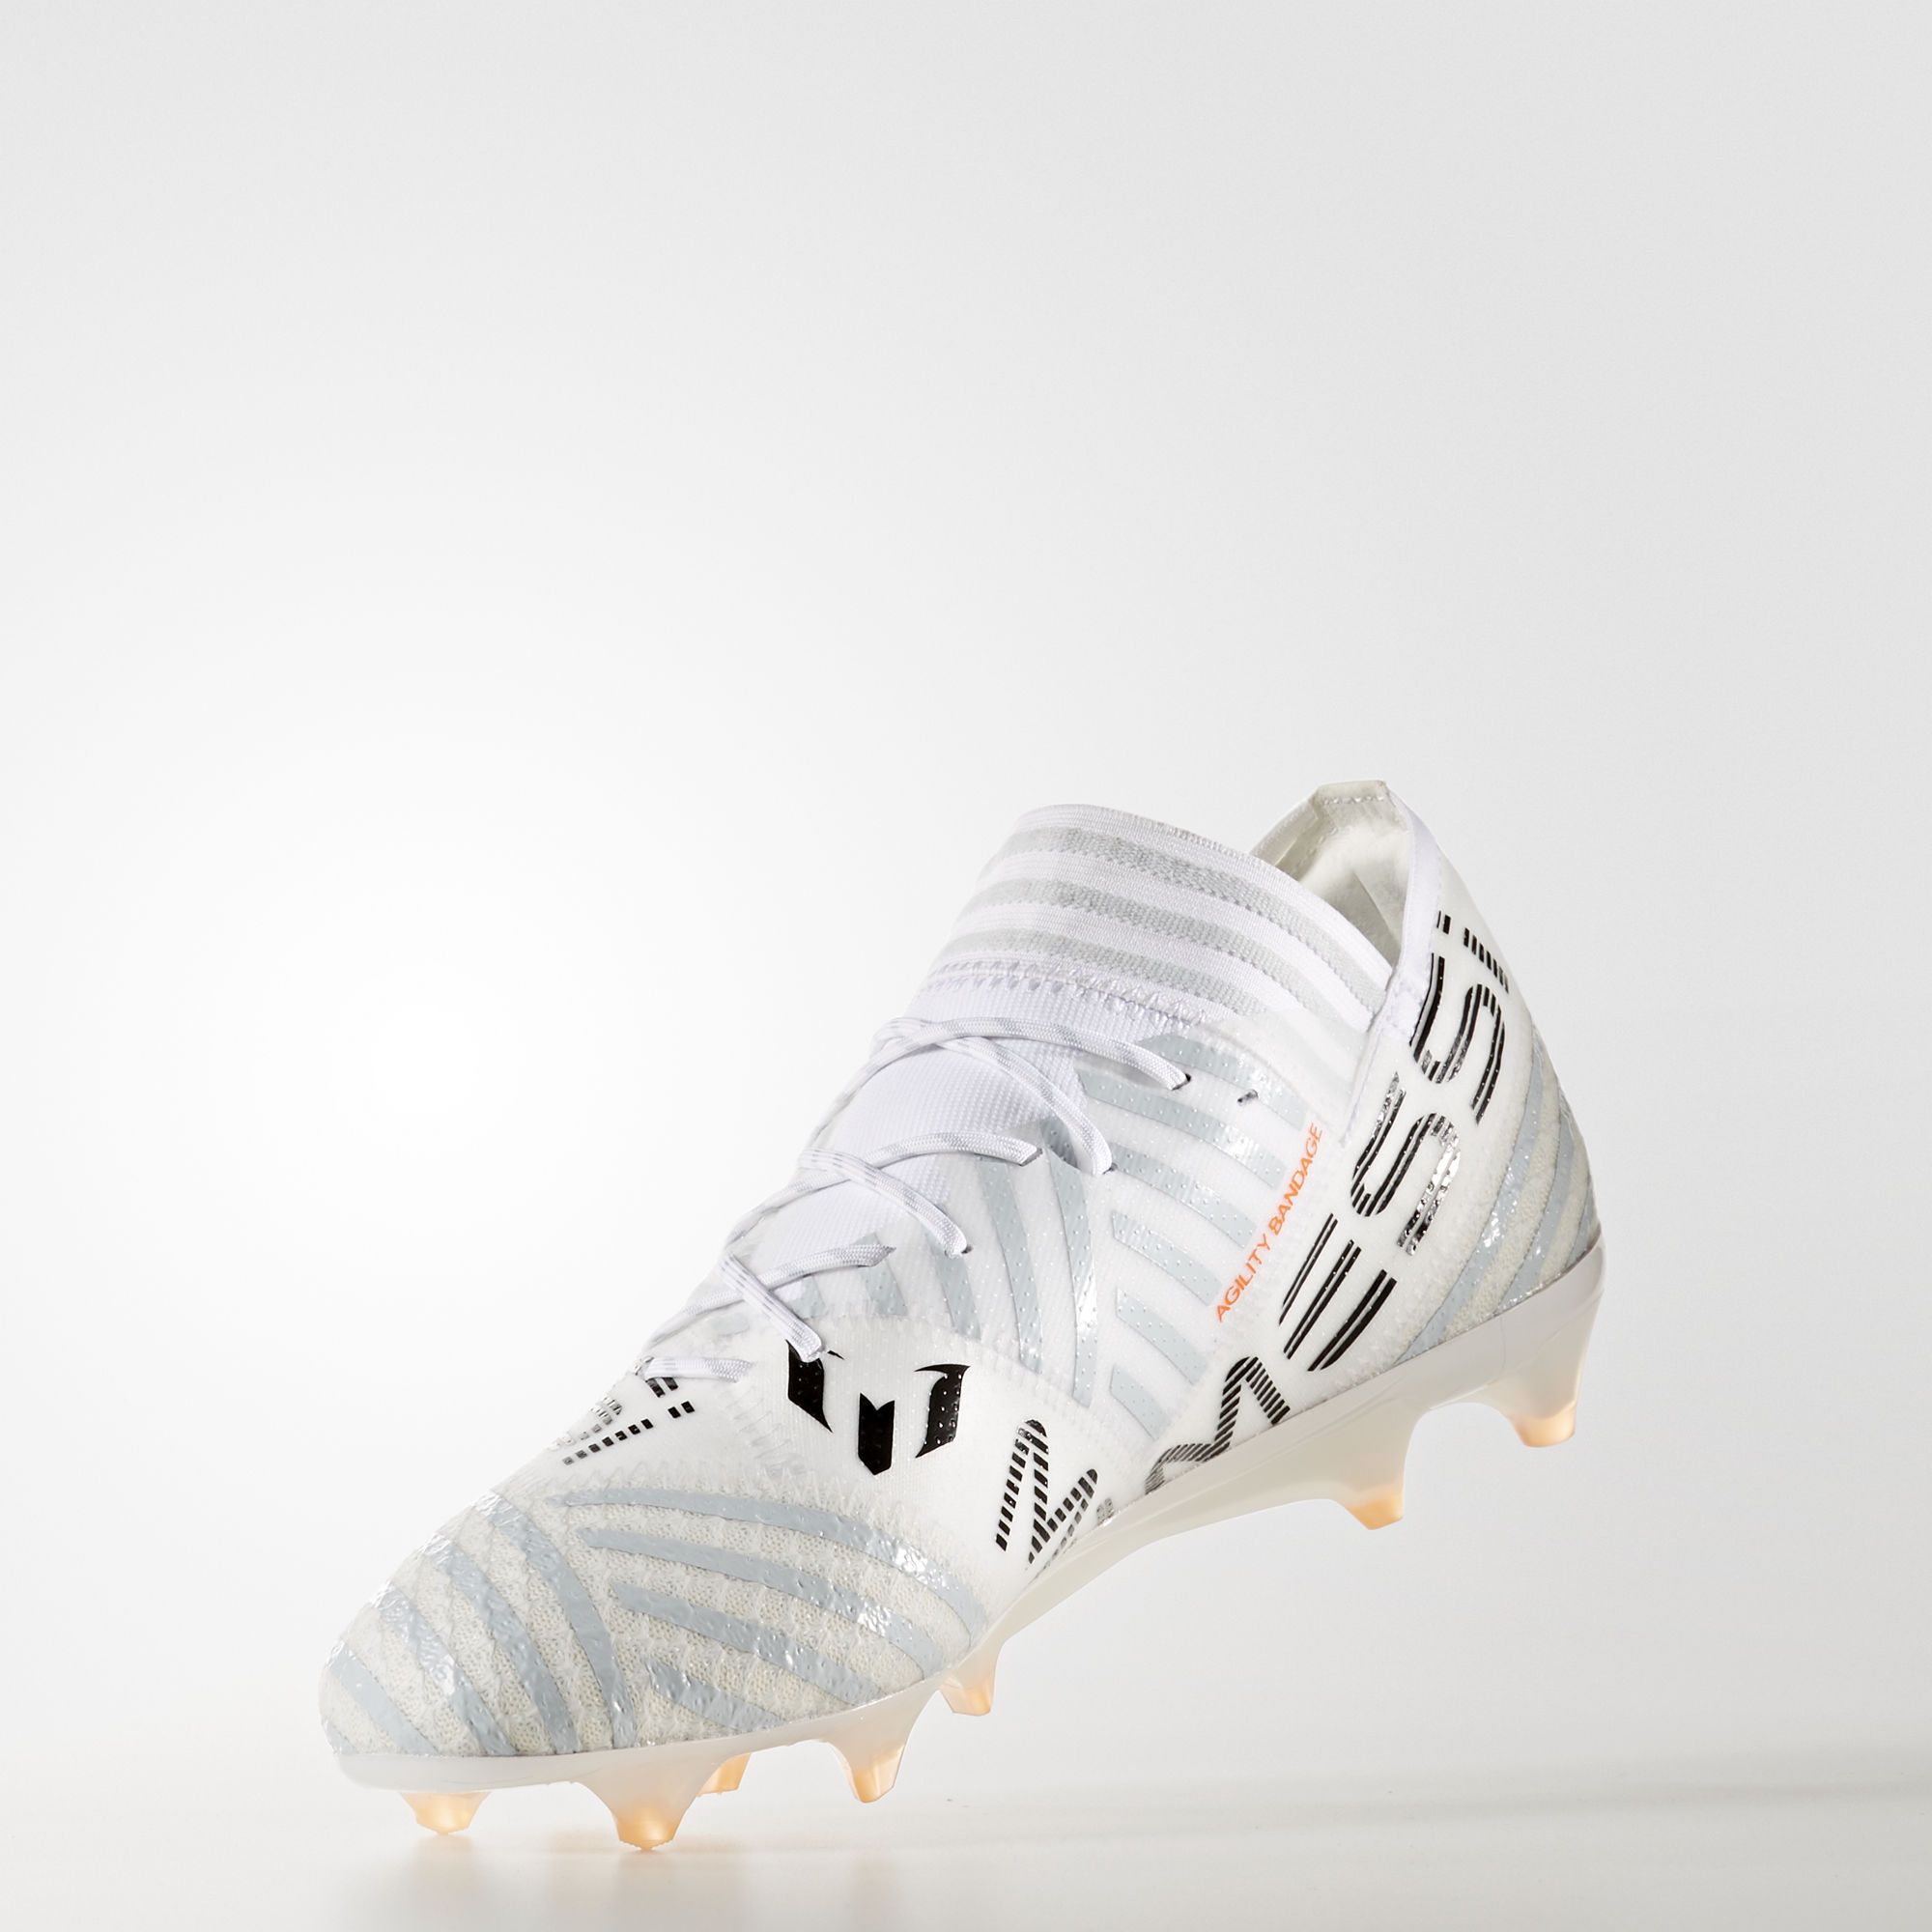 a0a2bba93 ... Click to enlarge image  adidas nemeziz messi 17 1 fg footwear white solar orange clear grey d.jpg  ...